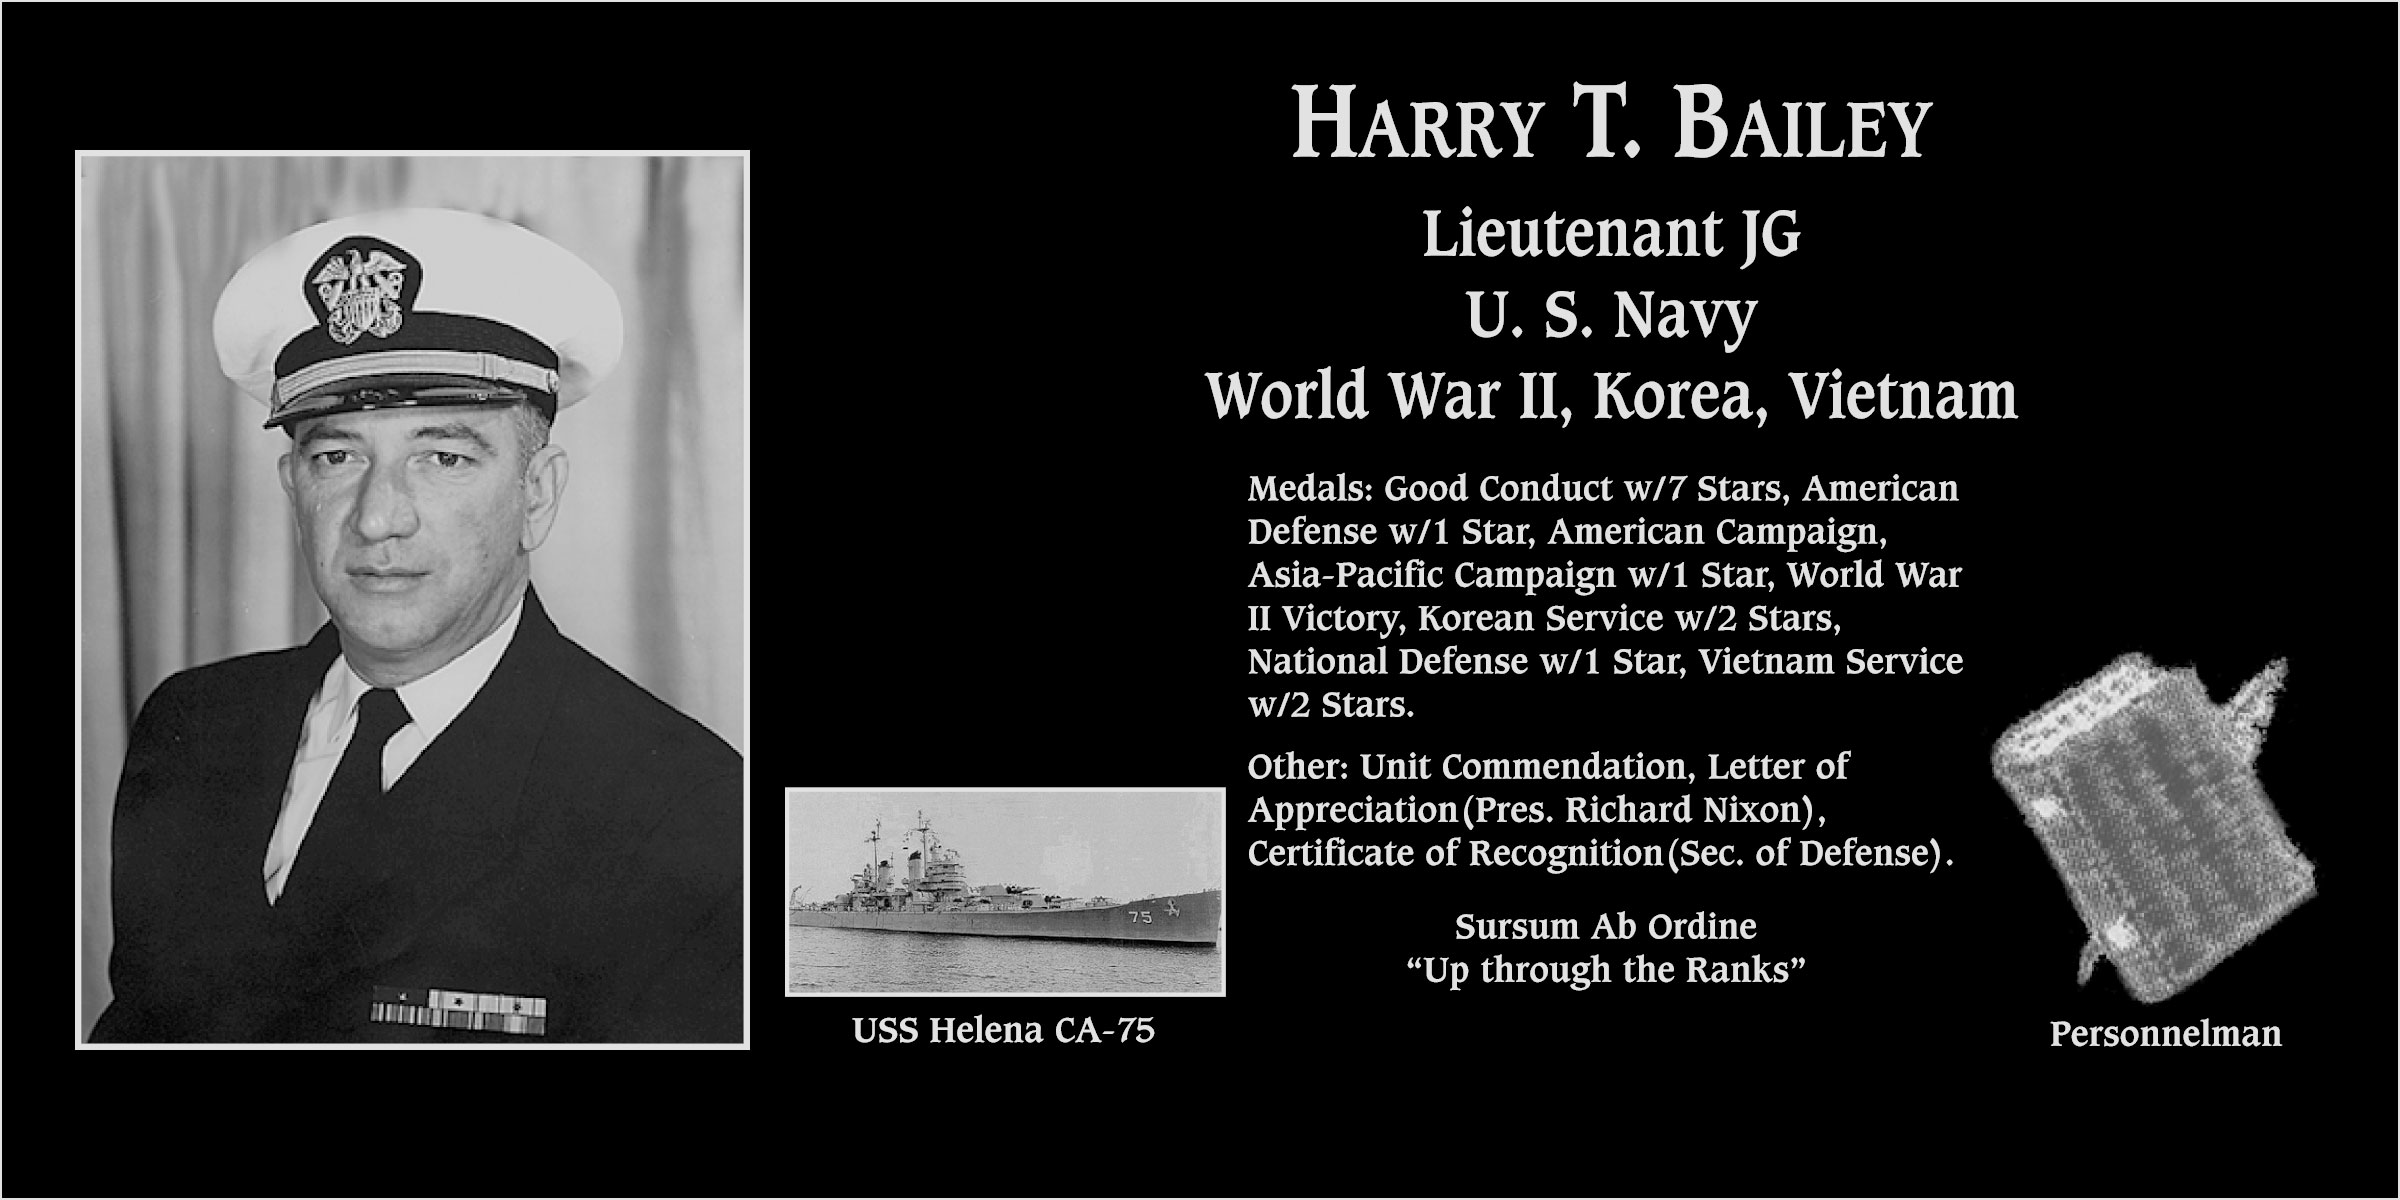 Harry T. Bailey